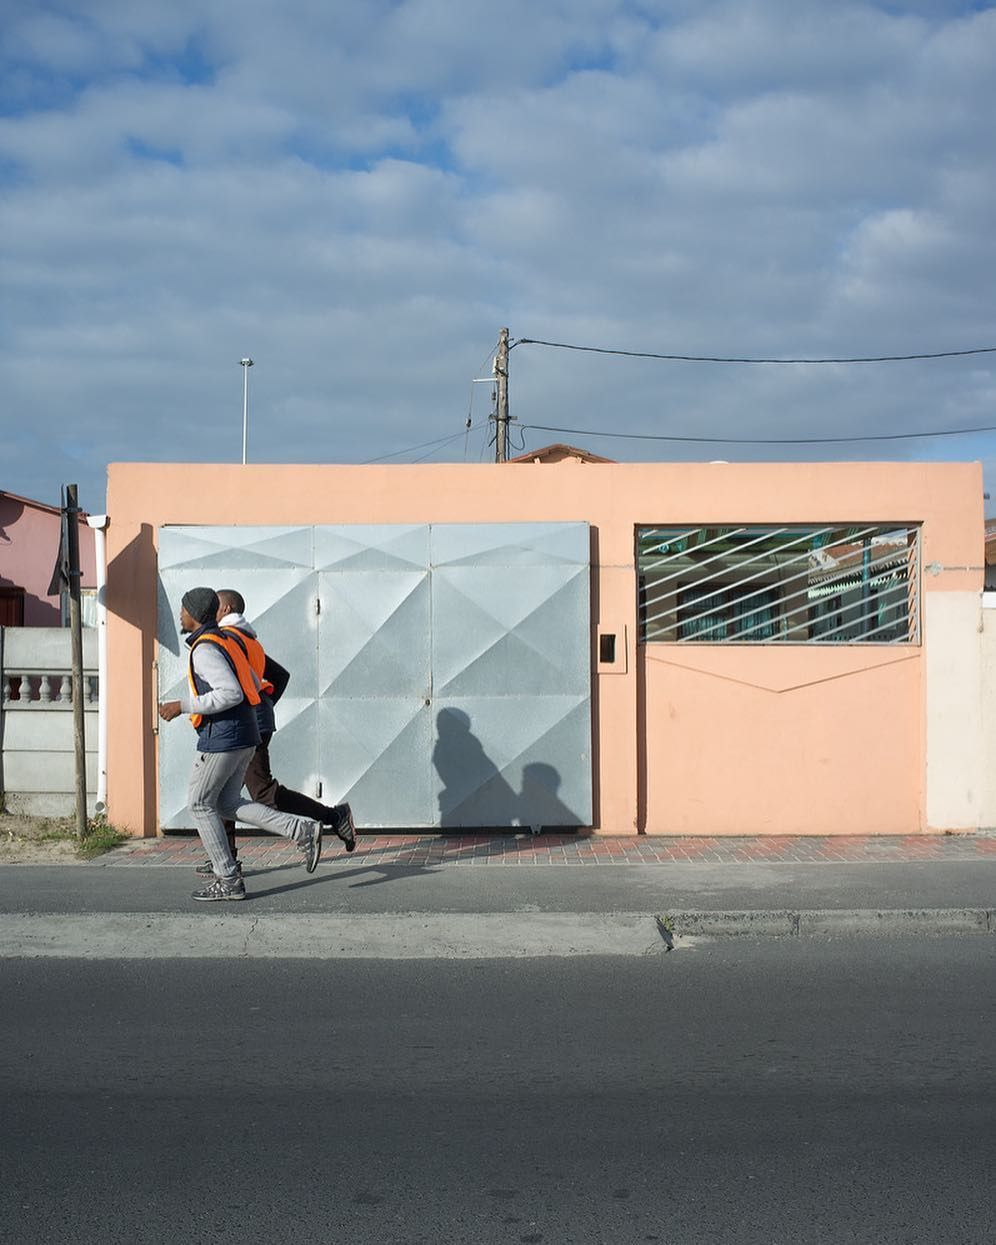 Local experts can take you beyond the beaches and wineries to a side of the city most visitors don't see. Over the course of two days in Khayelitsha, South Africa's biggest township, you can break a sweat with local kids and the adults who coach them. You'll start with a 6km run, during which you'll learn about the challenges facing young people in the township (your hosts, Ayanda and Buntu, have mastered the art of talking while running). The next day, you'll help out with a kids'…